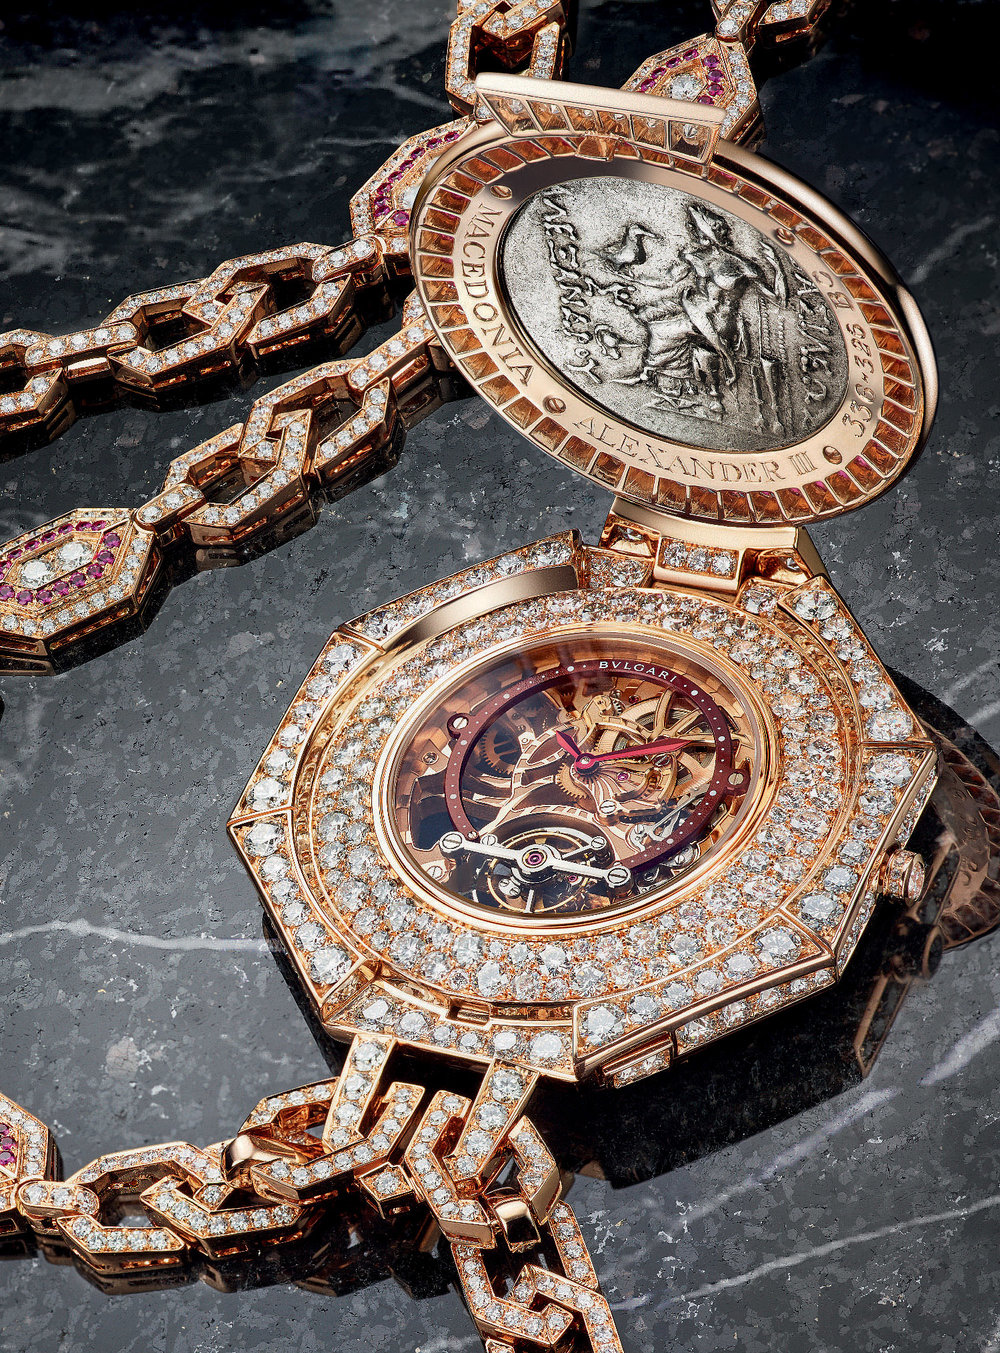 The gorgeous tourbillon calibre of the Bulgari Monete Pendant watch is itself protected by an octagonal case forming the pendant, crafted in 18kt pink gold and set with diamonds and rubies.